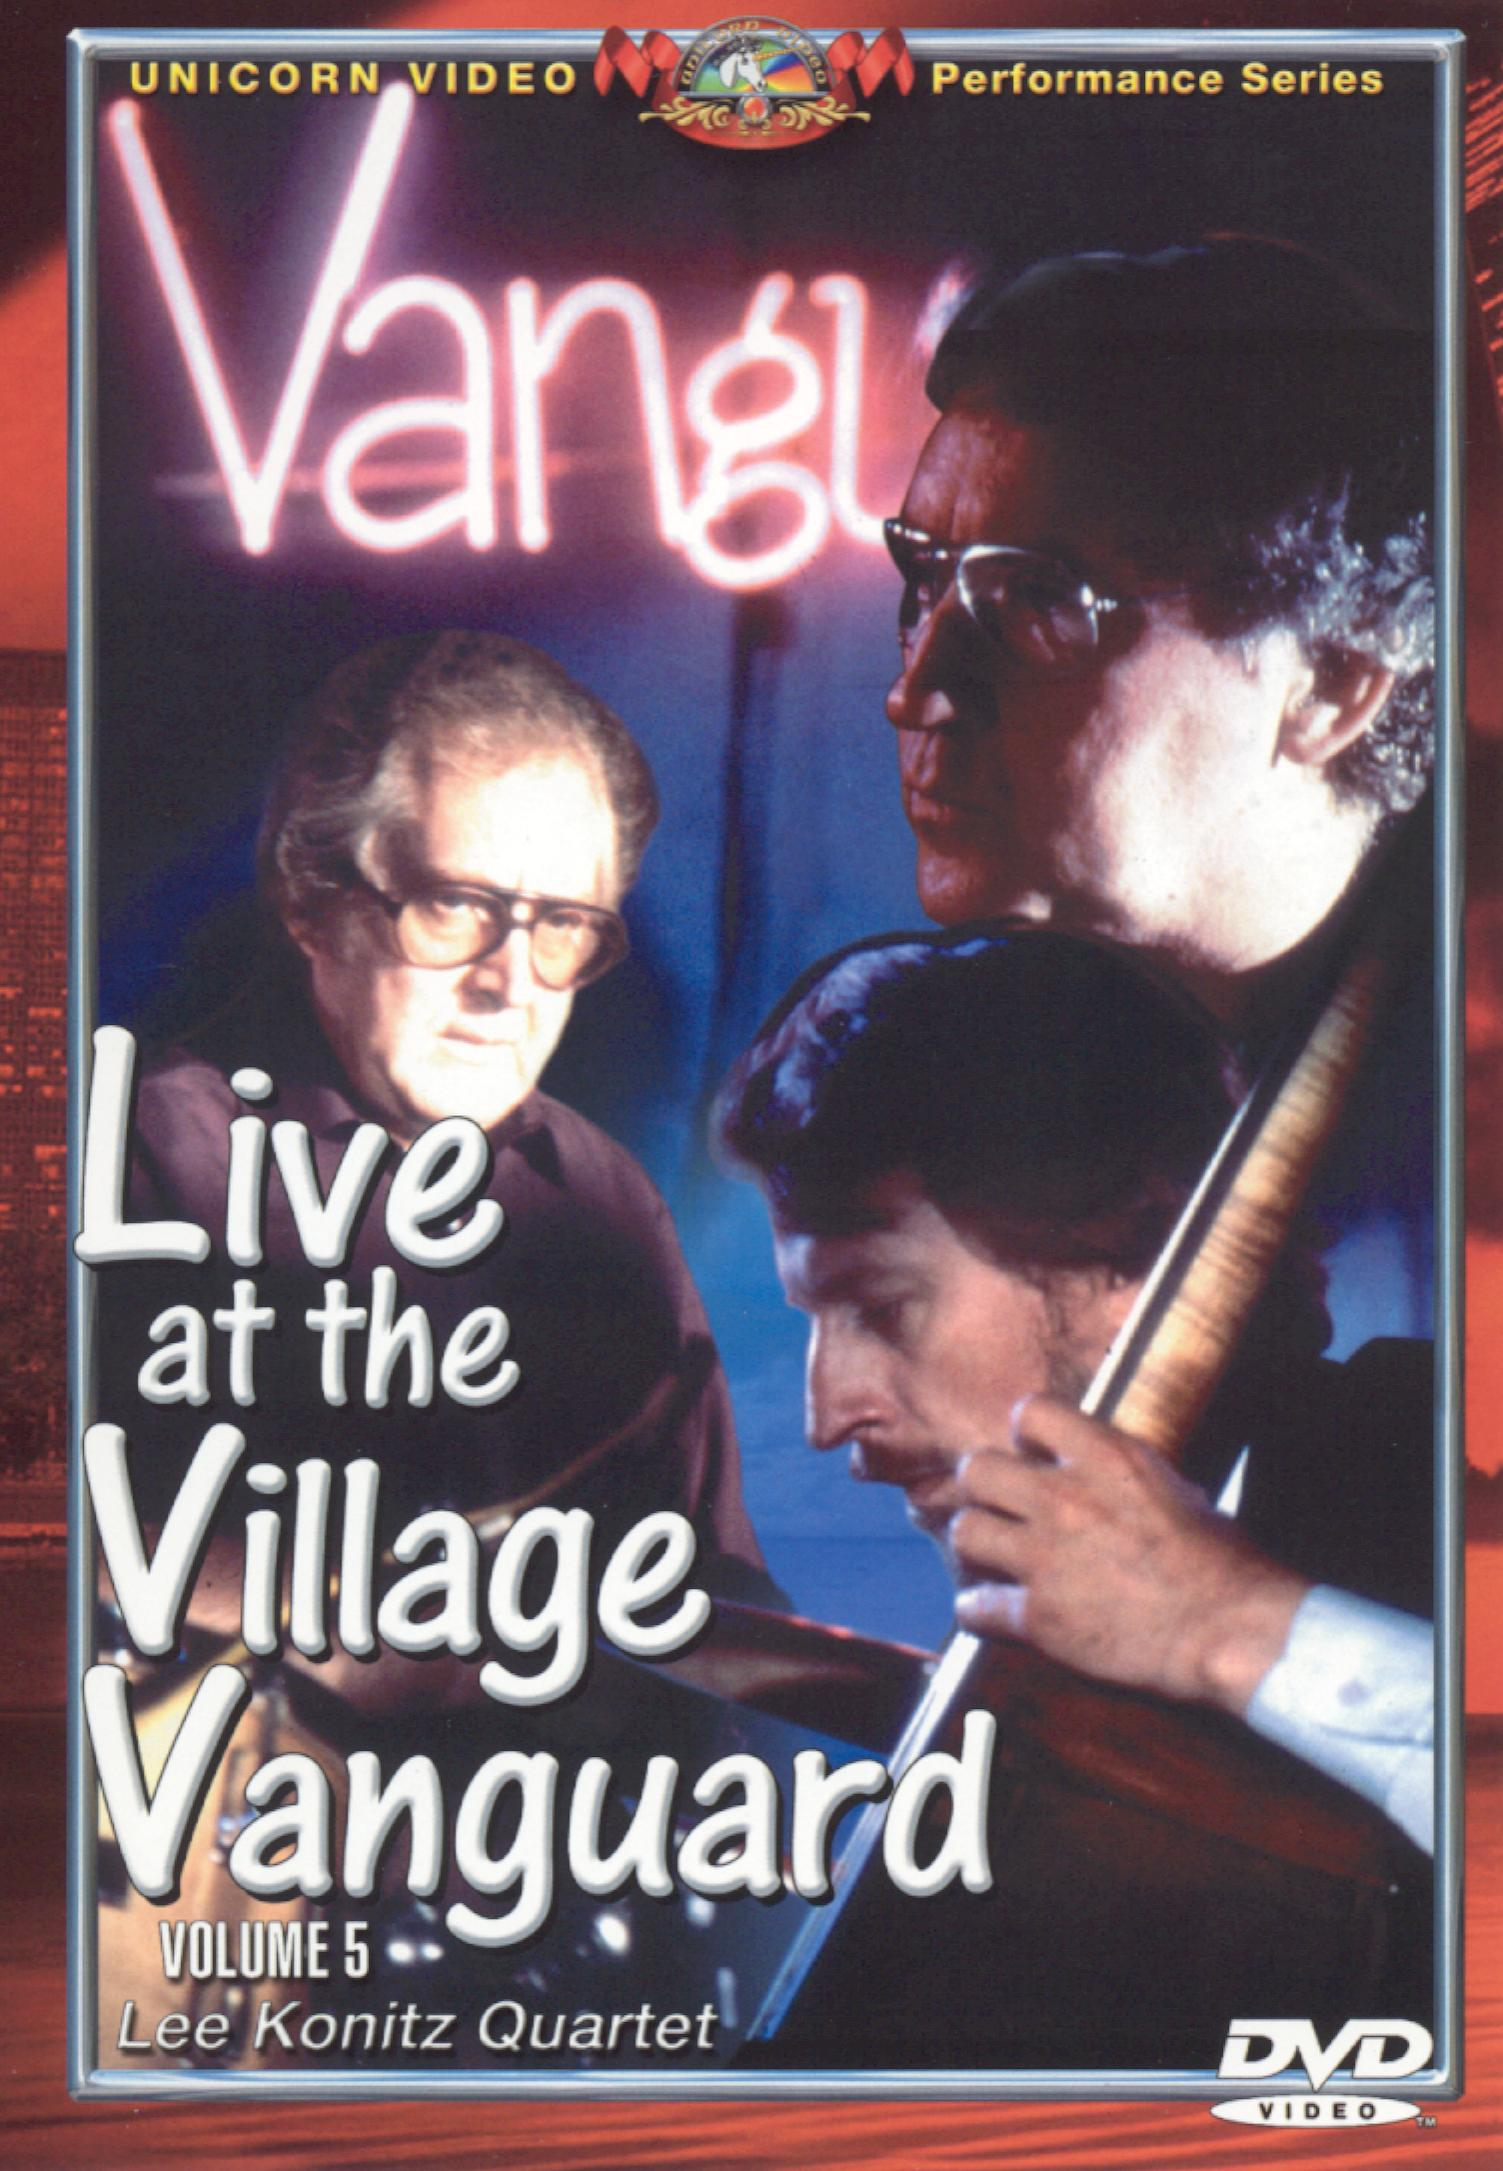 Live from the Village Vanguard, Vol. 5